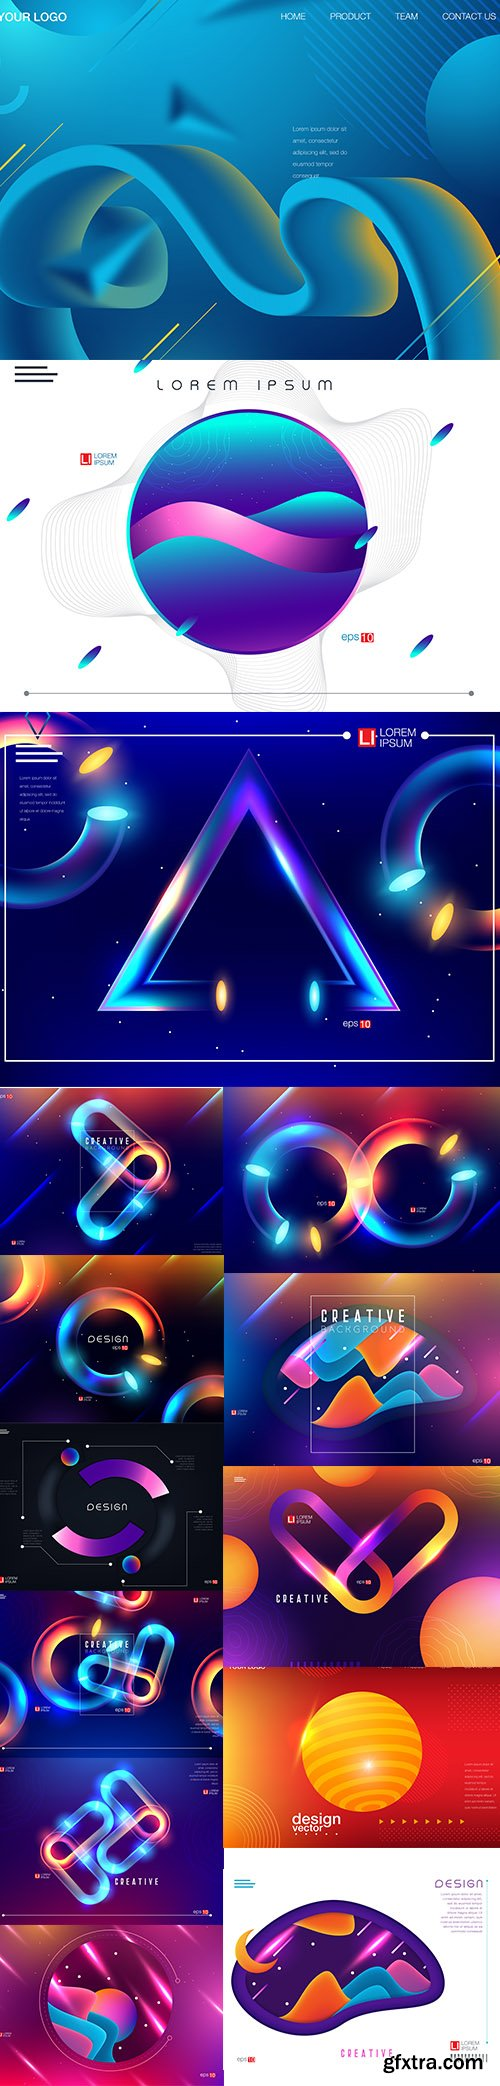 Abstract Colorful Futuristic Premium Illustrations Vector Set